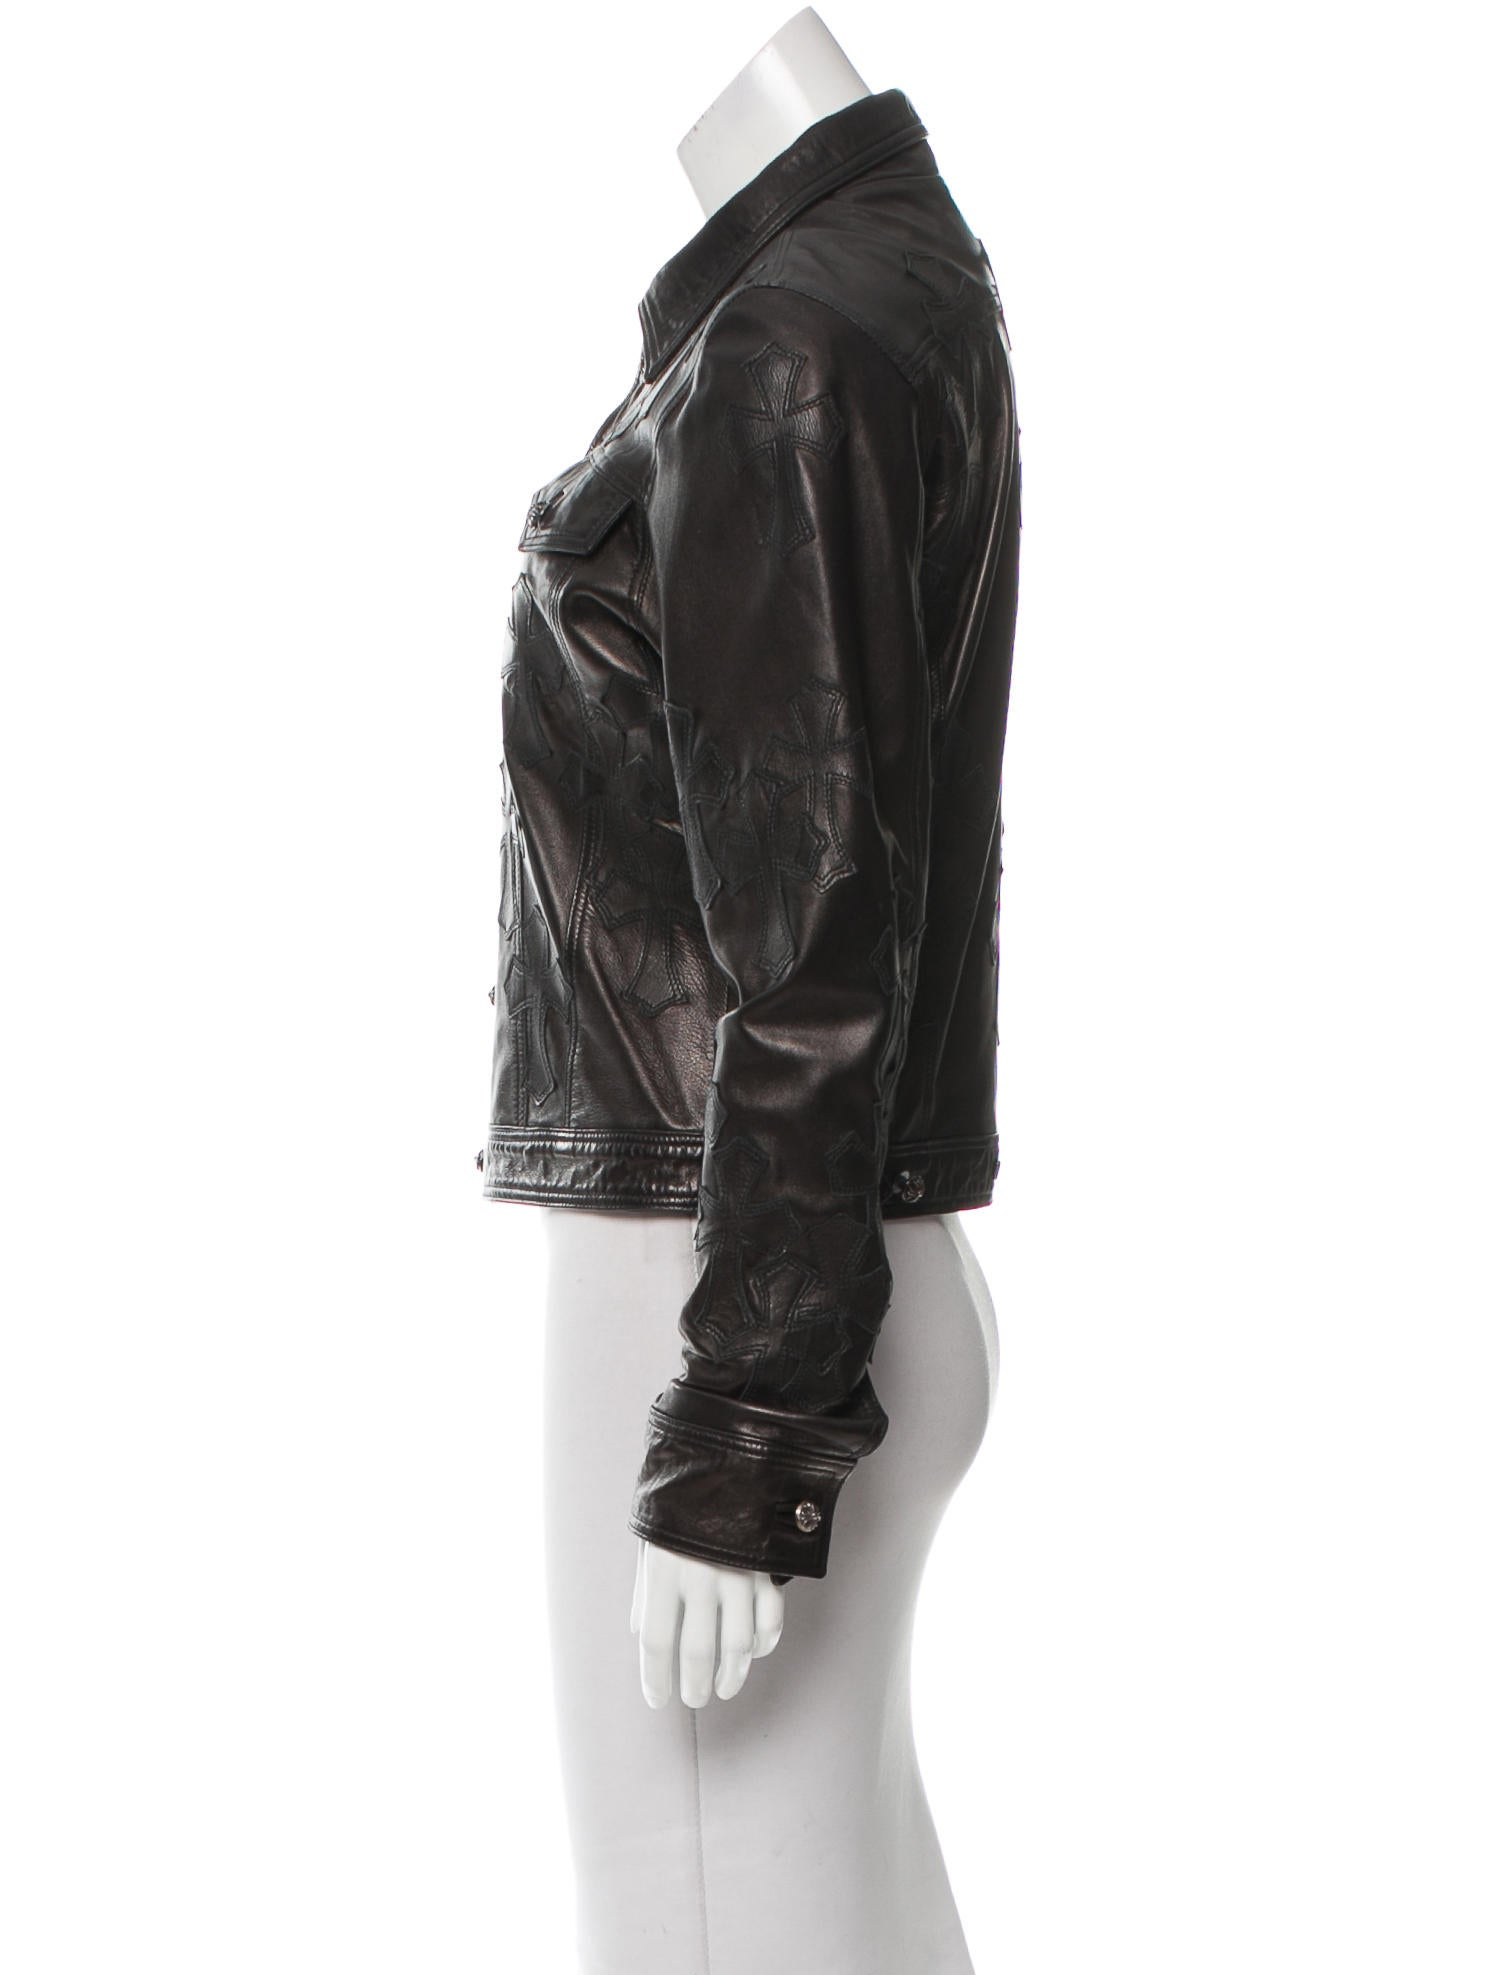 Chrome Hearts Button-Up Leather Jacket - Clothing ...